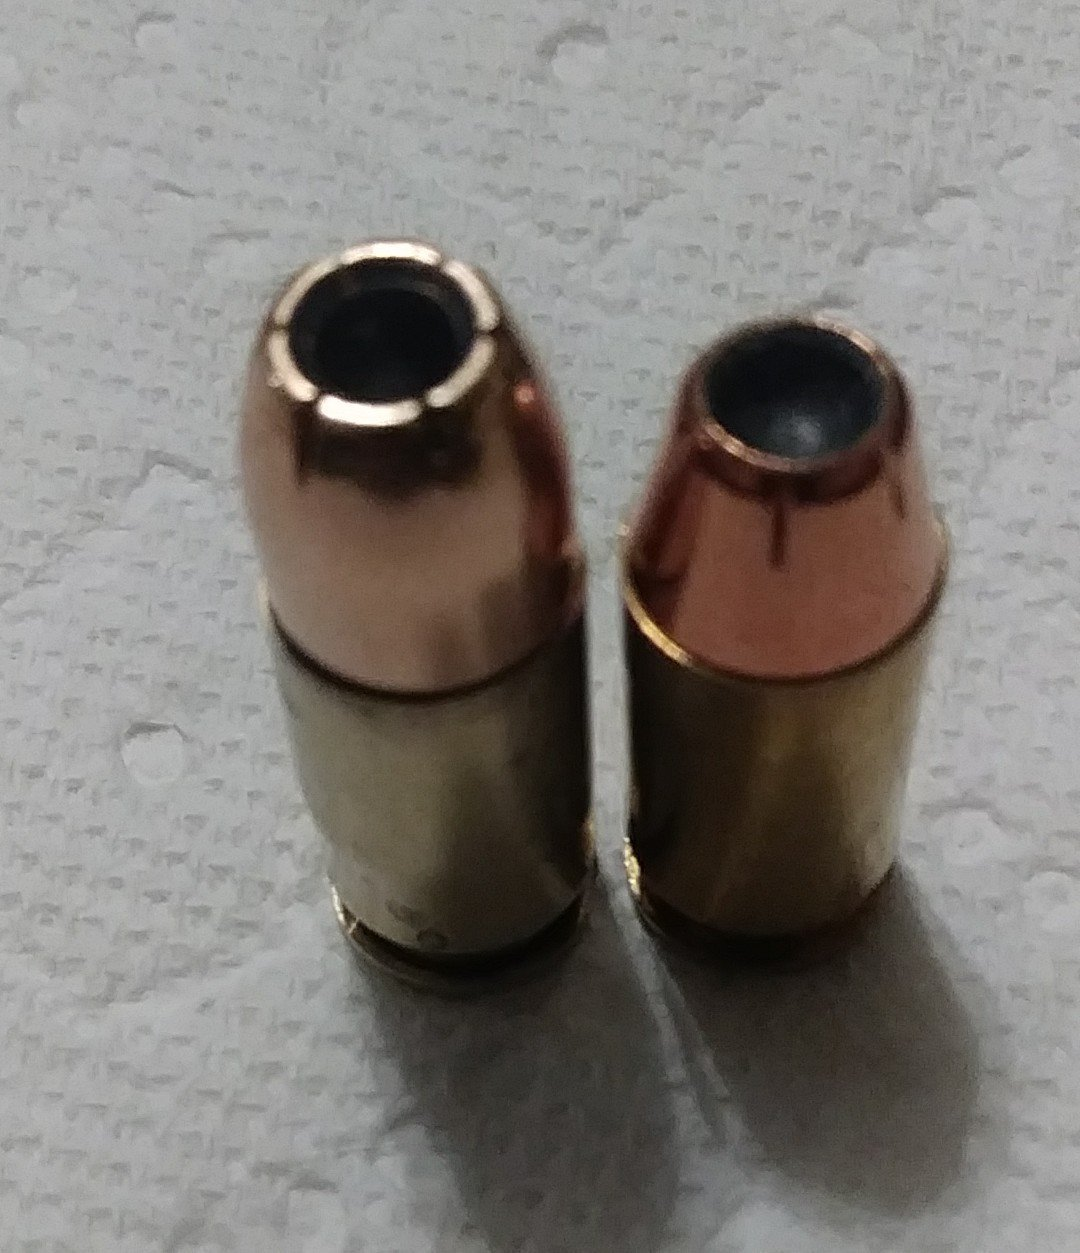 Any thoughts and/or experiences with the brand Zero Bullets